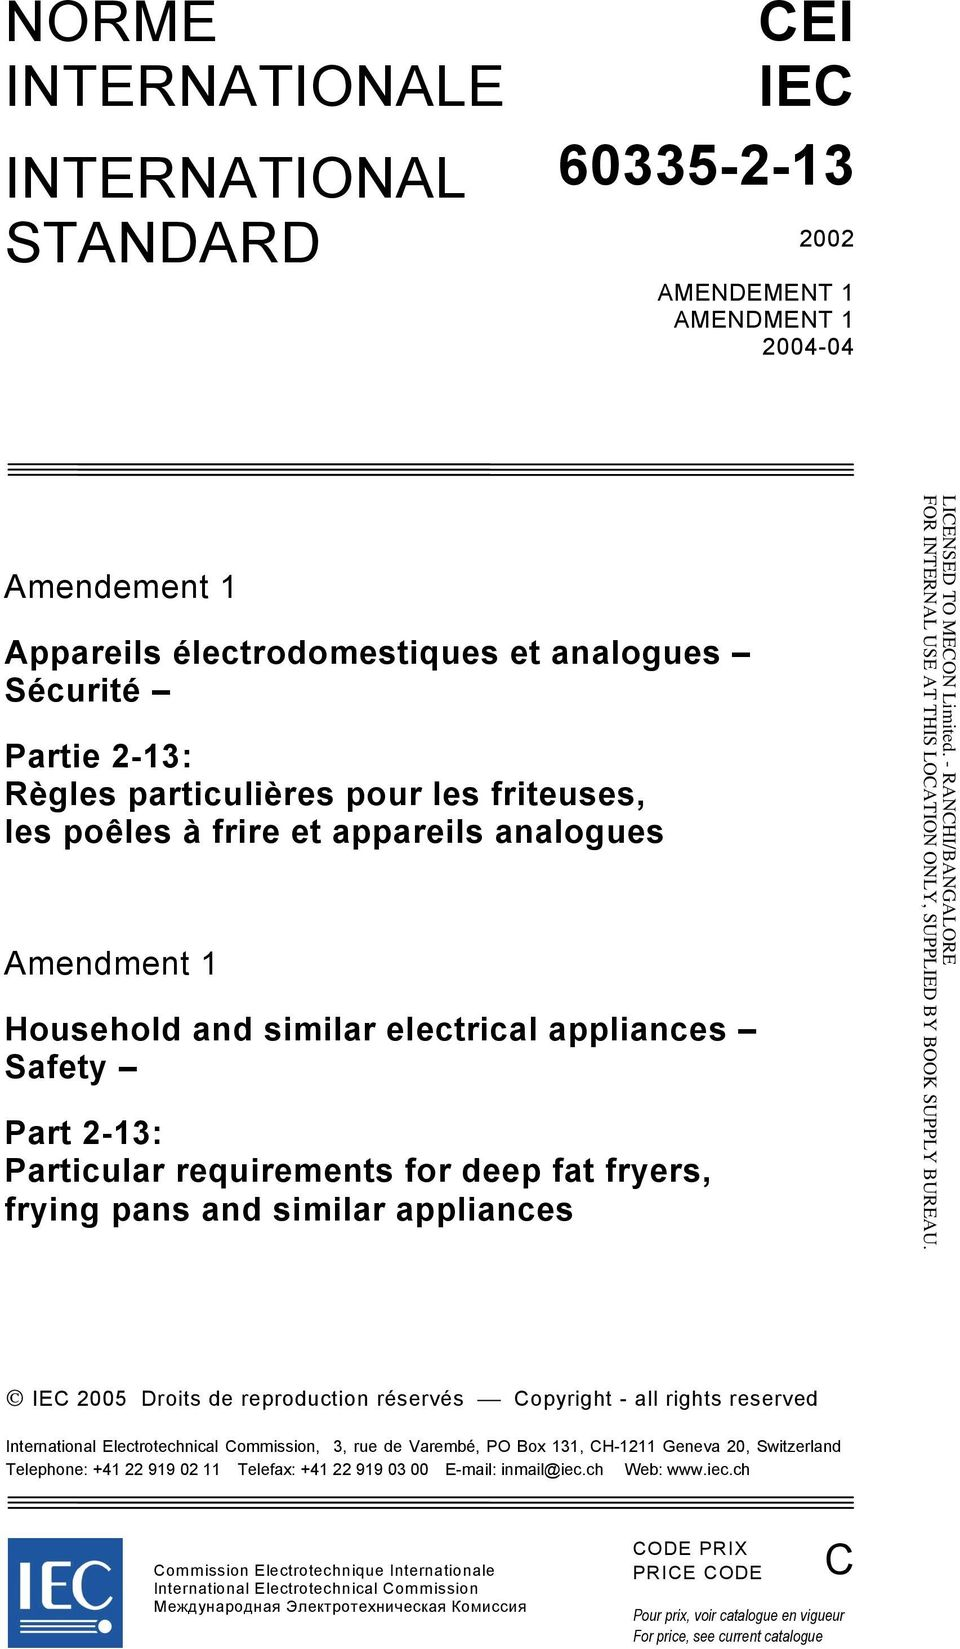 similar appliances IEC 2005 Droits de reproduction réservés Copyright - all rights reserved International Electrotechnical Commission, 3, rue de Varembé, PO Box 131, CH-1211 Geneva 20, Switzerland